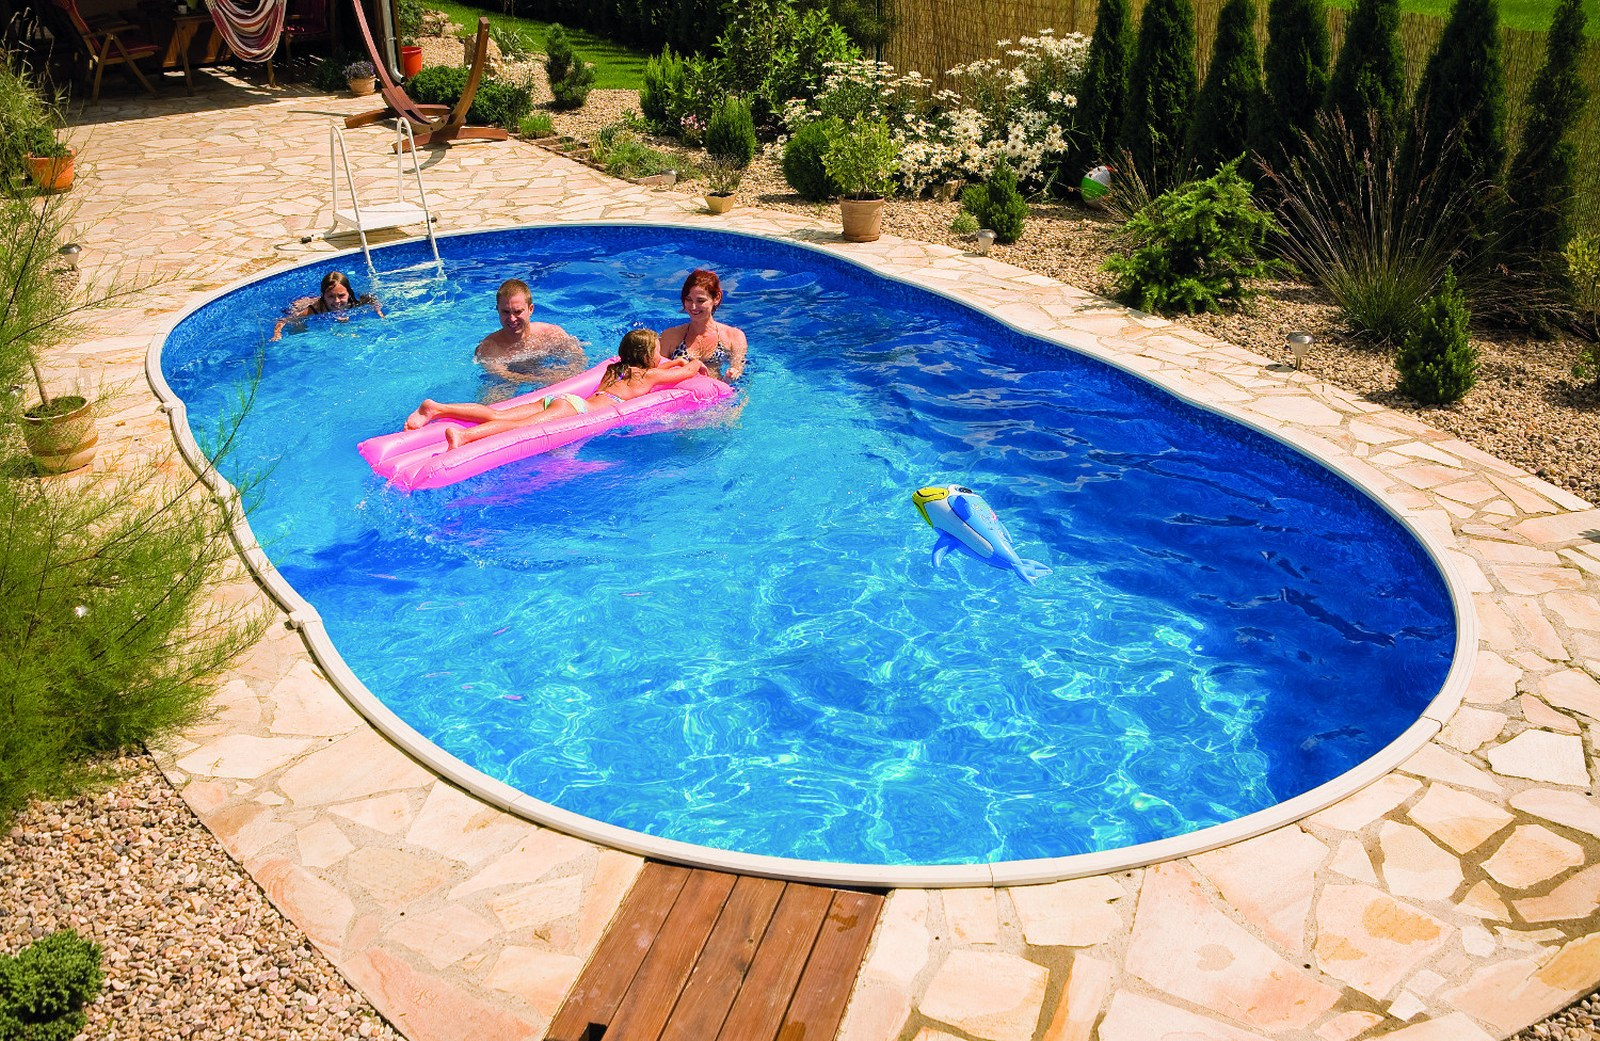 Mountfield azuro ovale piscine autoportante et enterre for Piscina autoportante